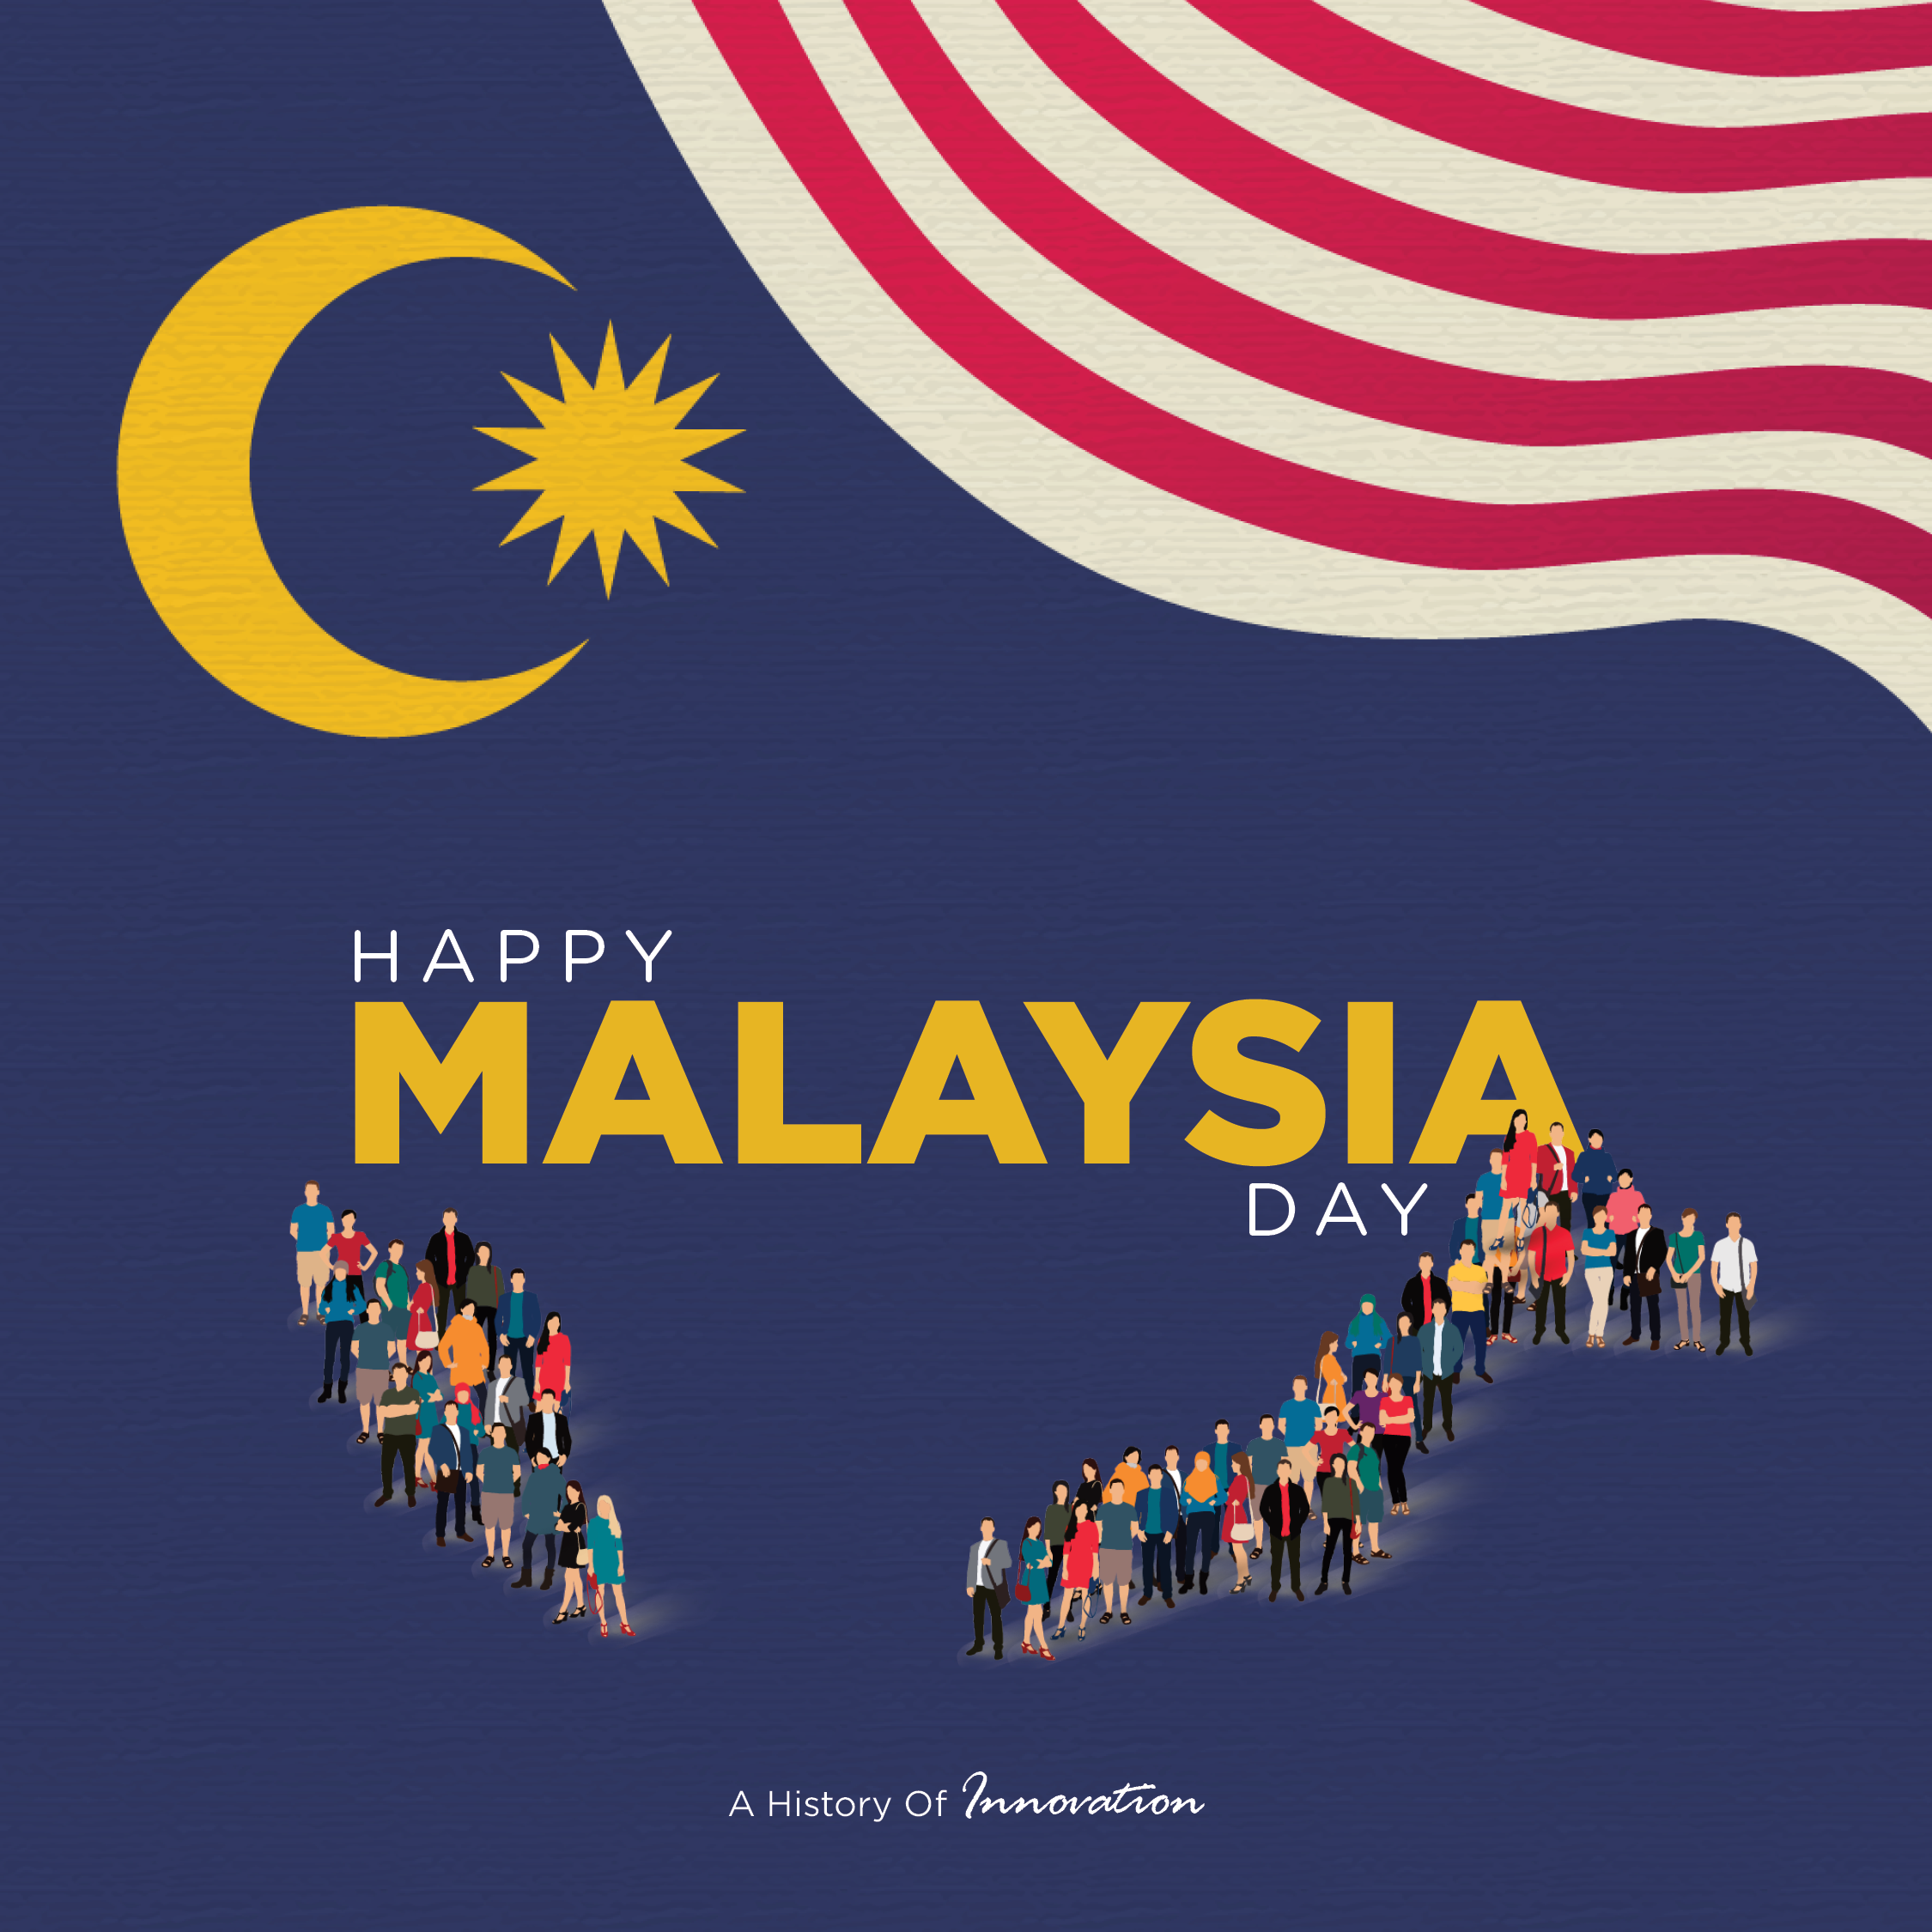 Template_Poster_MalaysiaDay2020